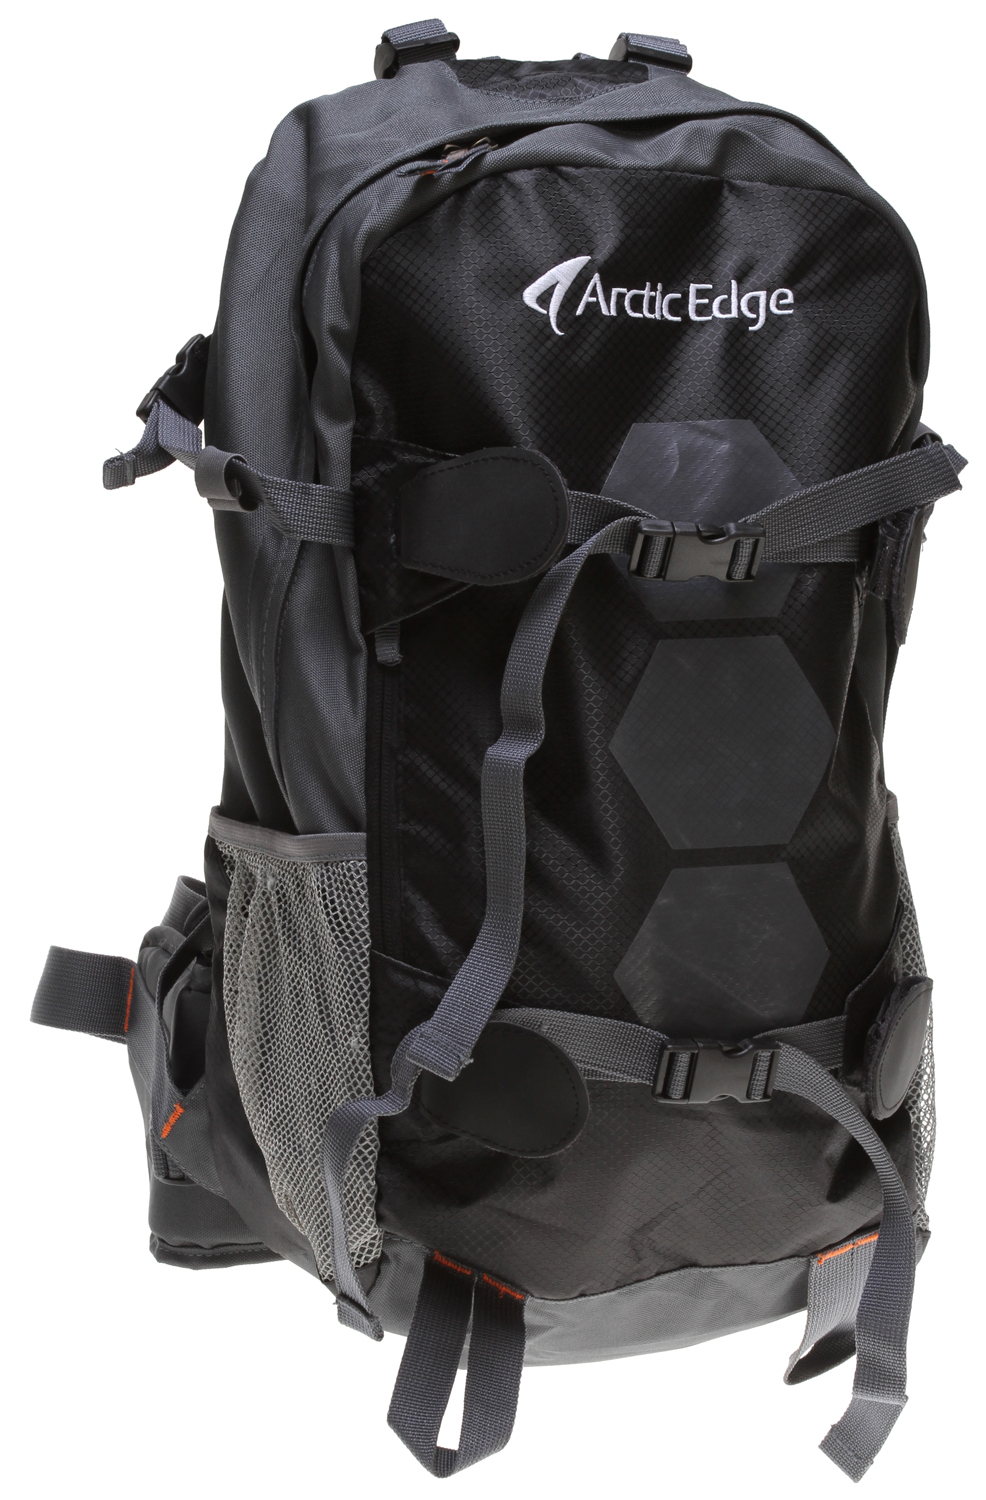 Ski Advanced ski backpack.Key Features of the Arctic Edge Vallee 25L Backpack: 2 external snow tool/ shovel holder Padded backside Aluminum rail Ergonomic straps and hip-belt Height adjustable chest strap Vertical ski/ snowboard carry system Top opening for hydro system - $49.85